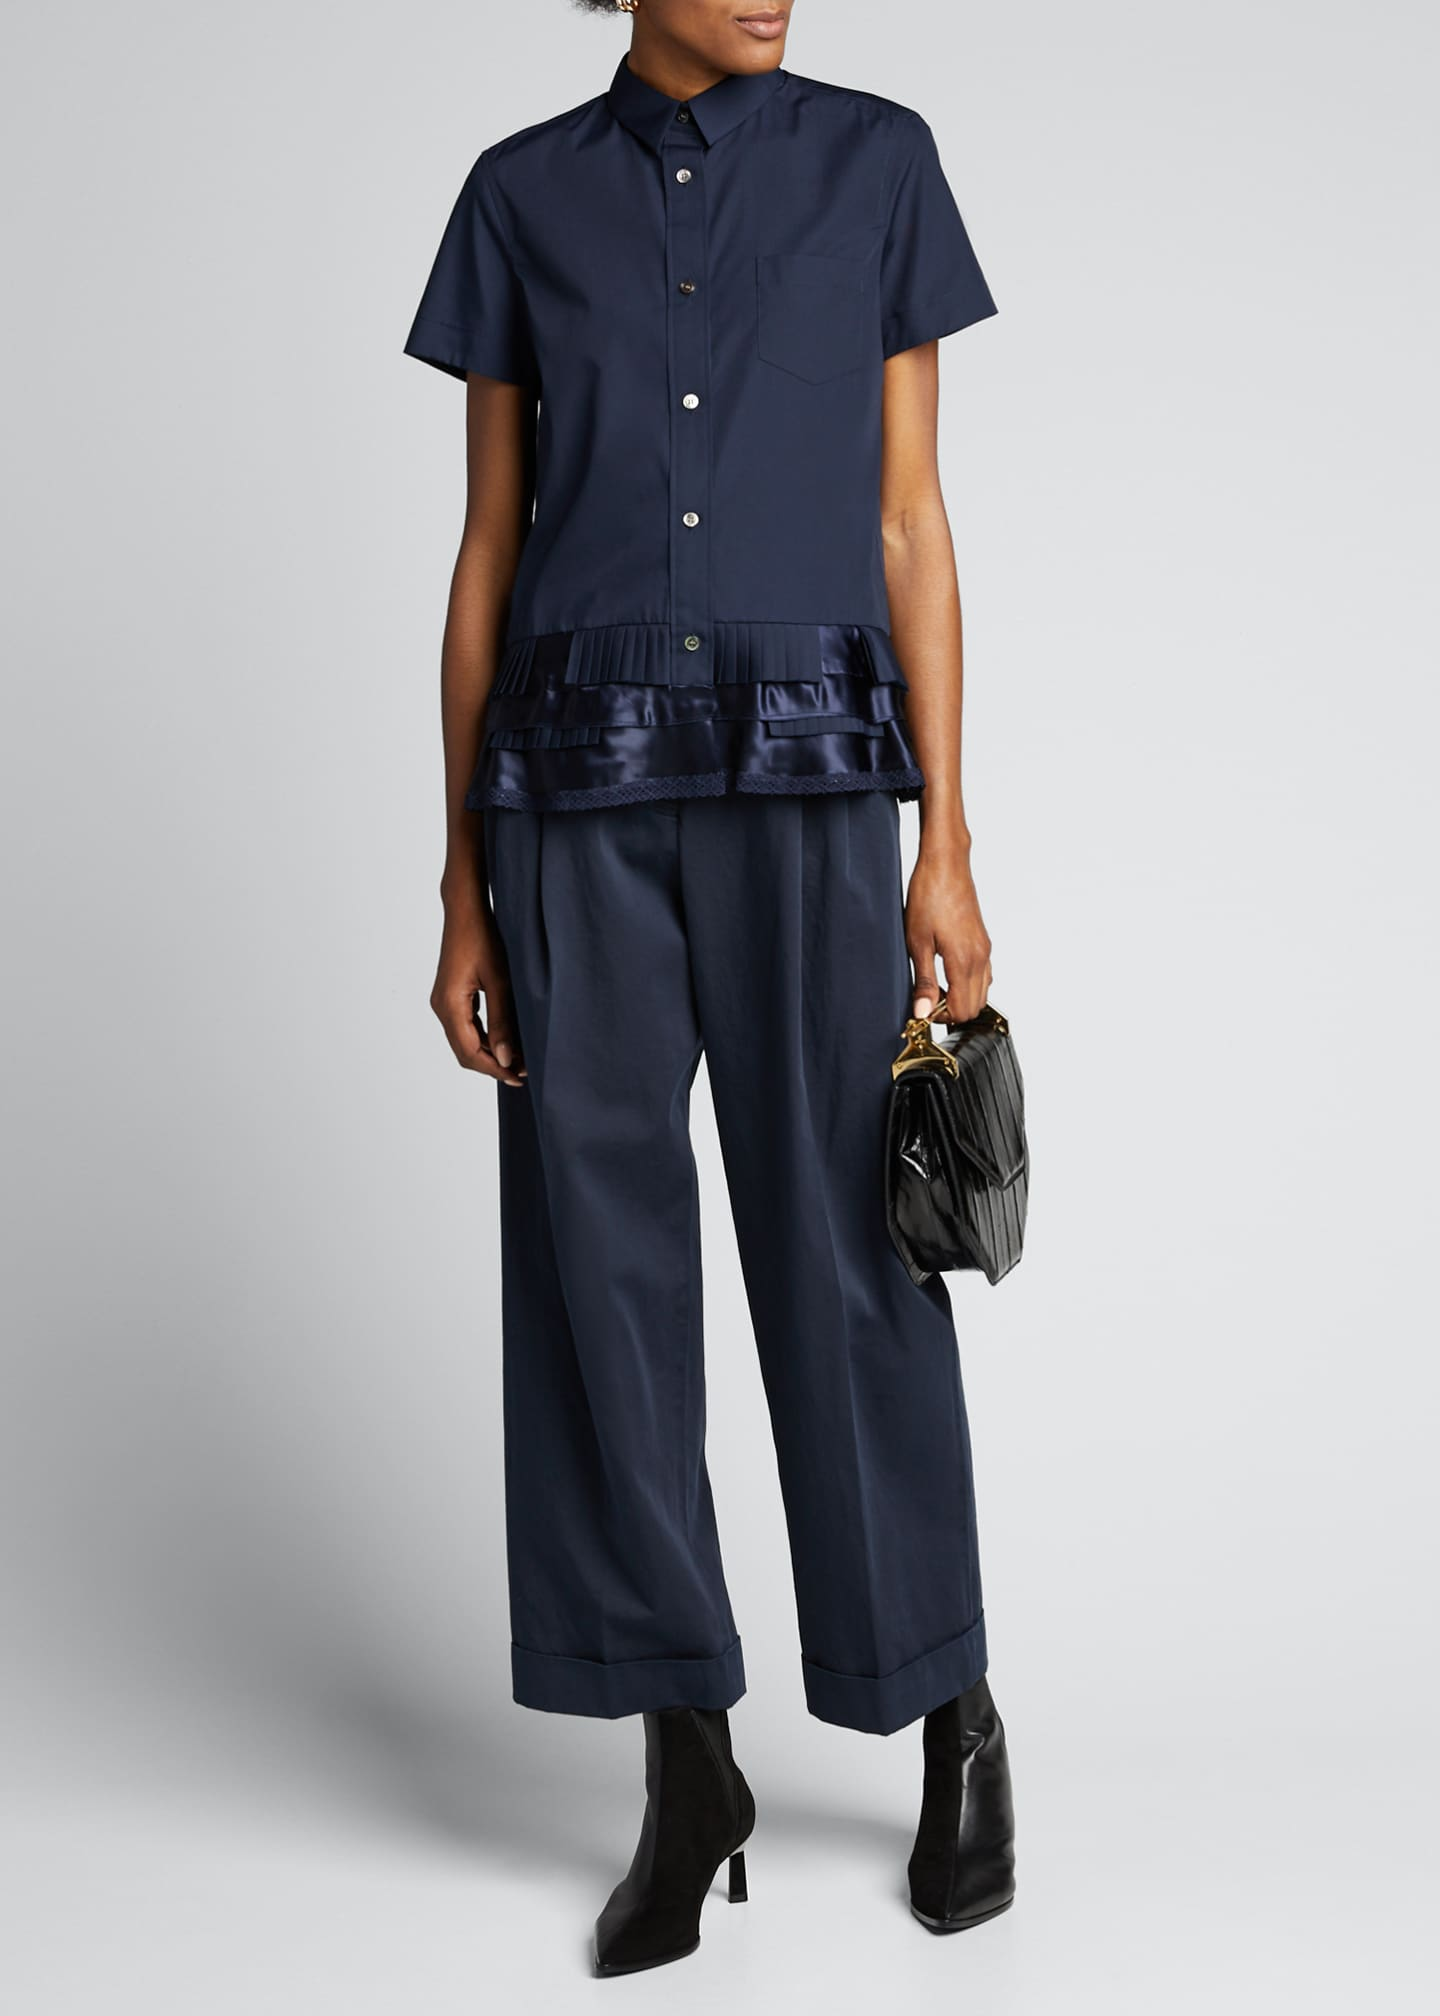 SACAI Short-Sleeve Button-Down Ruffled-Hem Shirt